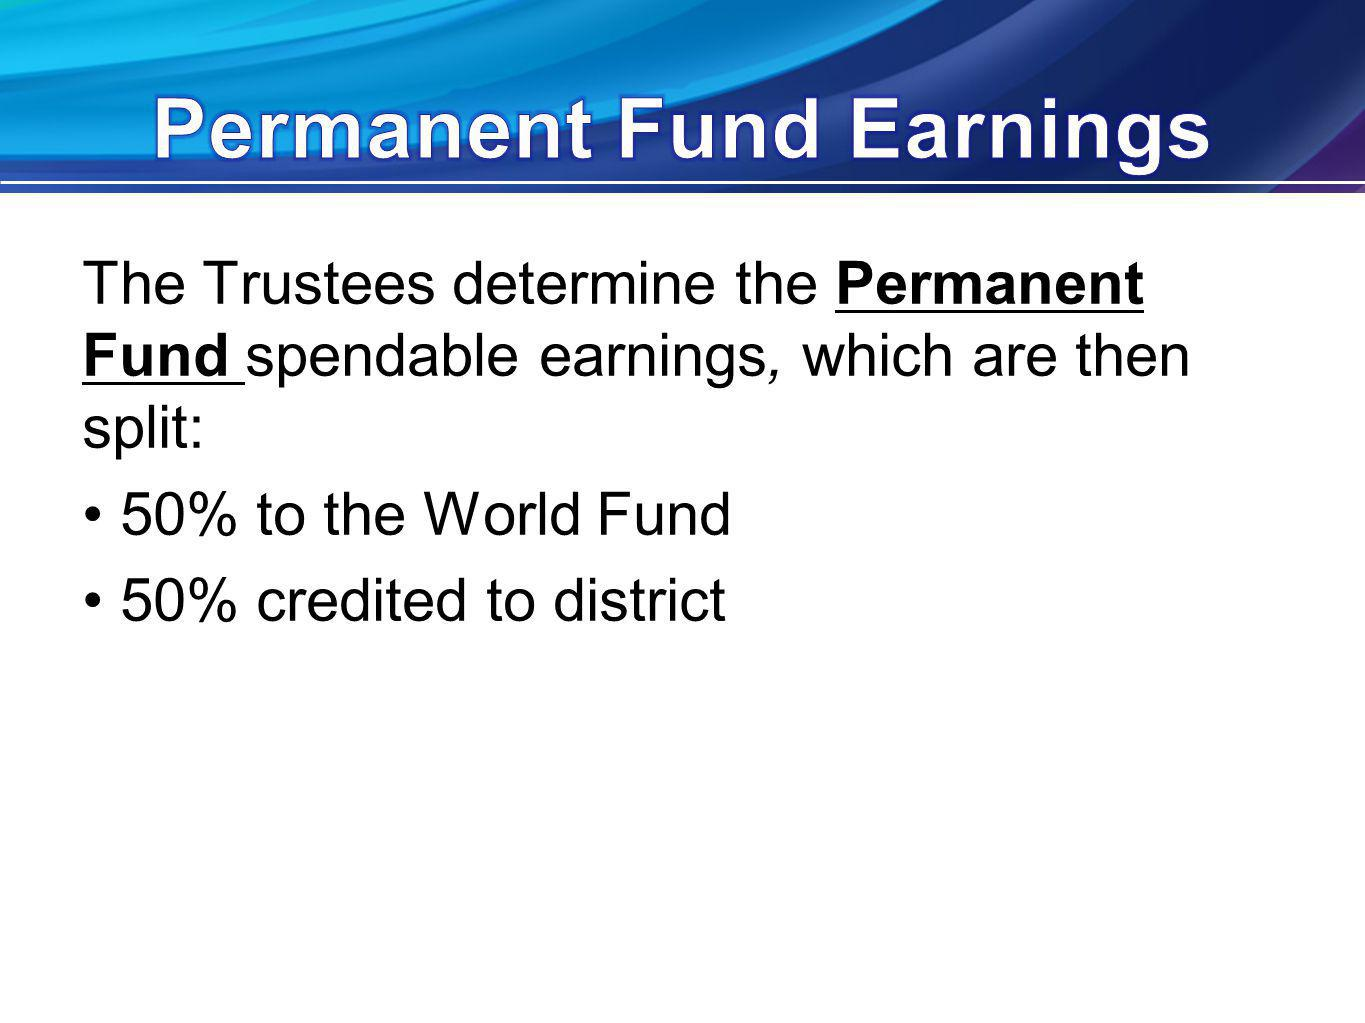 The Trustees determine the Permanent Fund spendable earnings, which are then split: 50% to the World Fund 50% credited to district